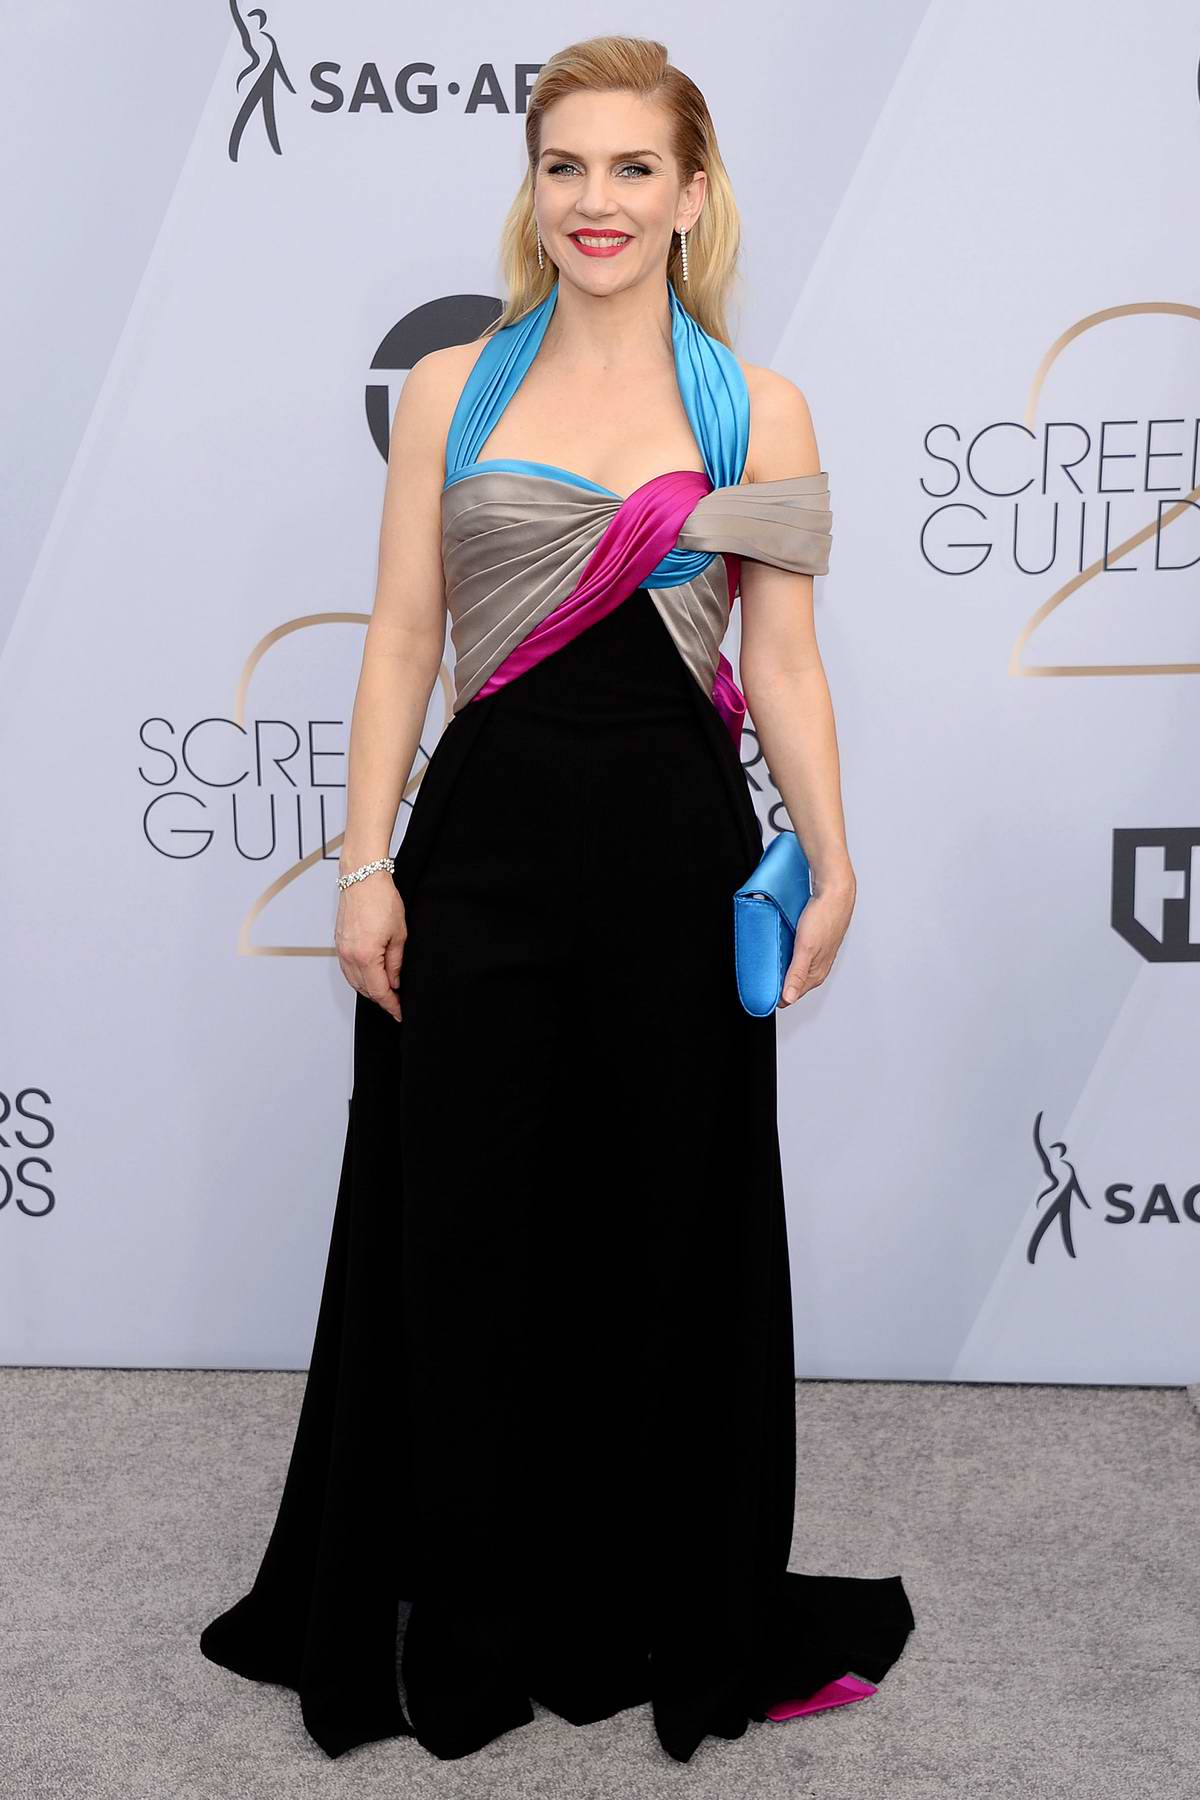 Rhea Seehorn attends the 25th Annual Screen Actors Guild Awards (SAG 2019) at the Shrine Auditorium in Los Angeles